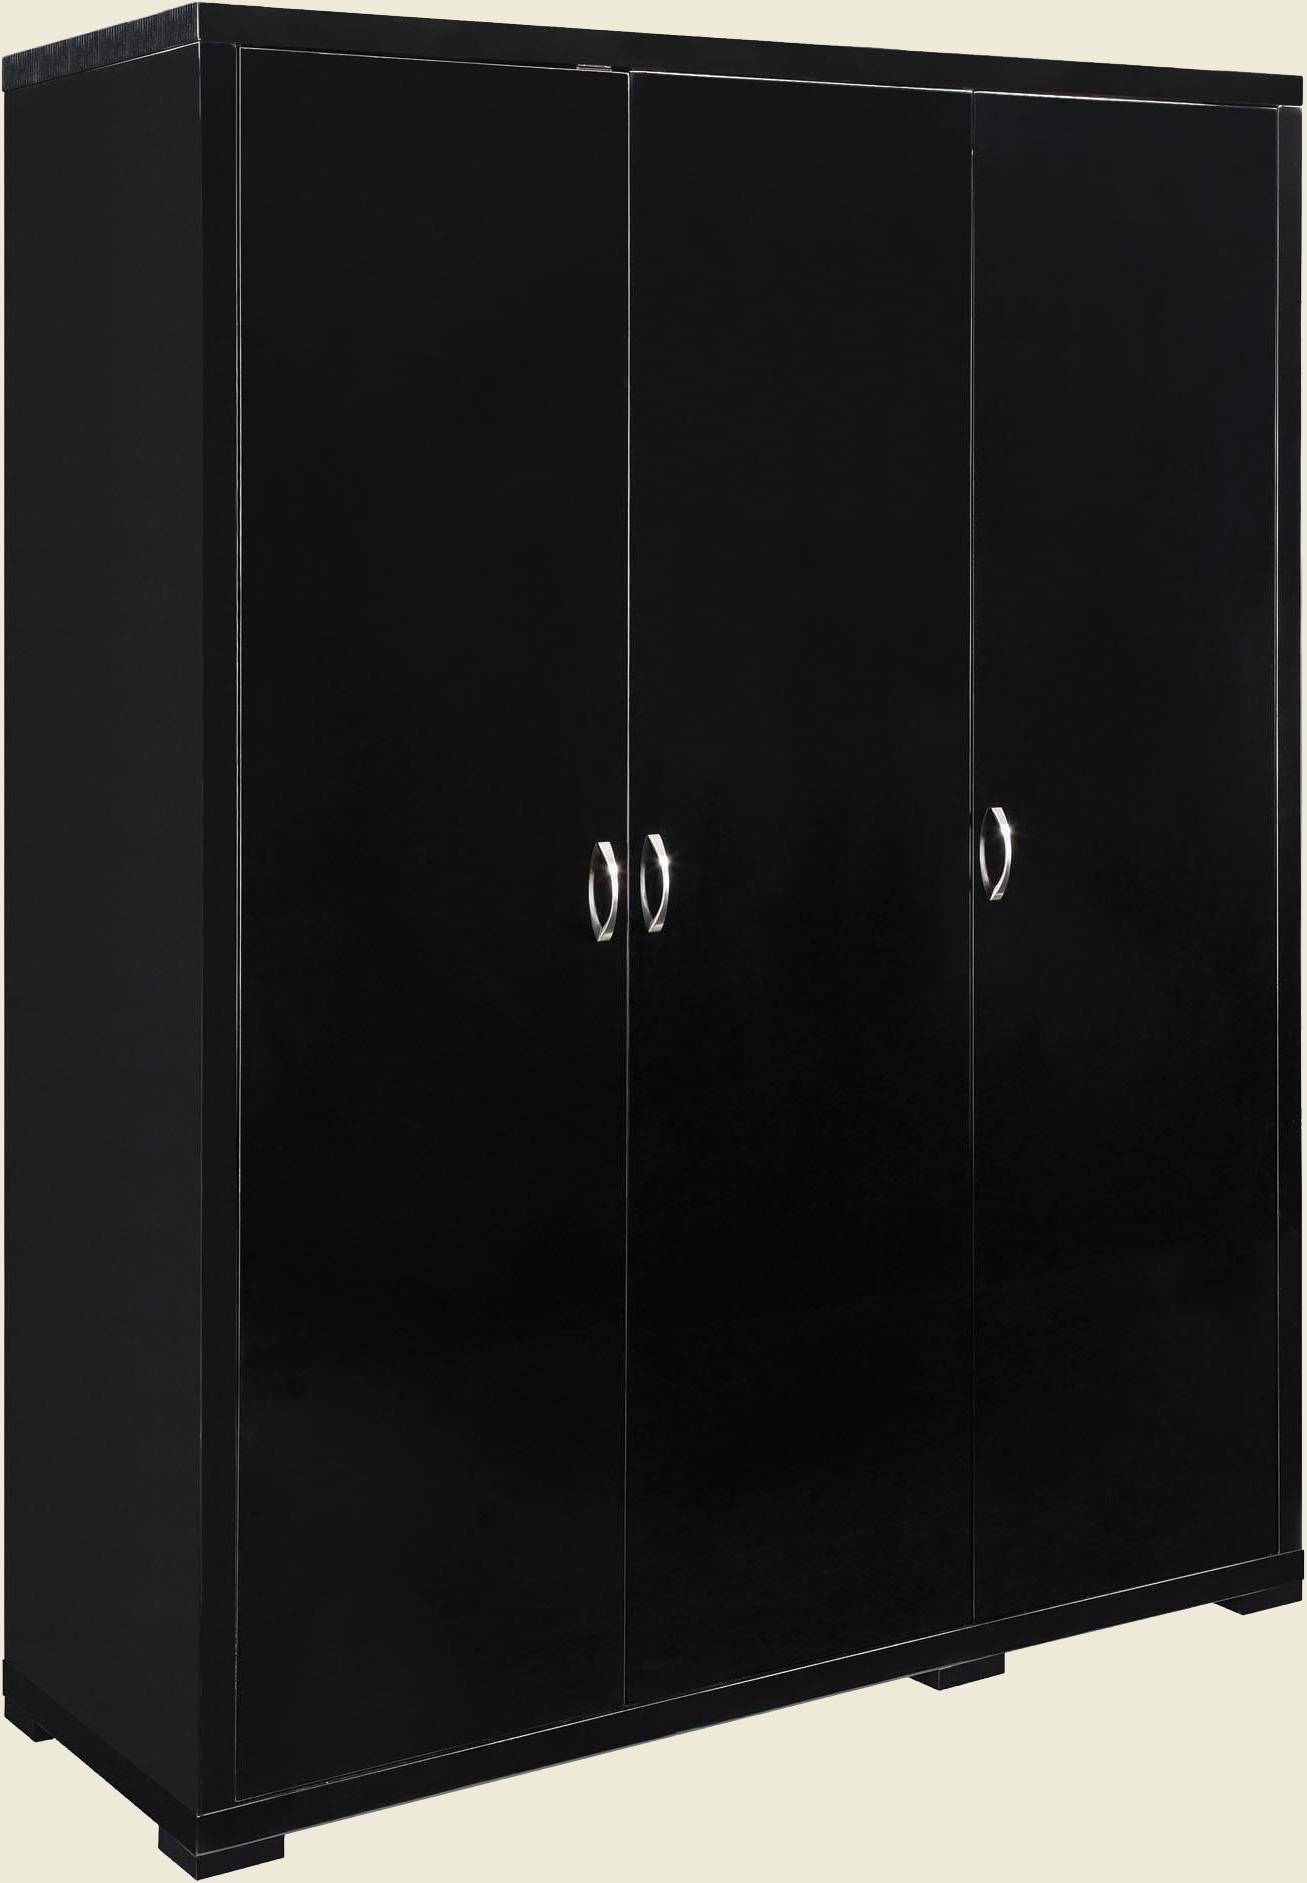 Luna 3 Door Wardrobe with 3 Door Black Wardrobes (Image 11 of 15)